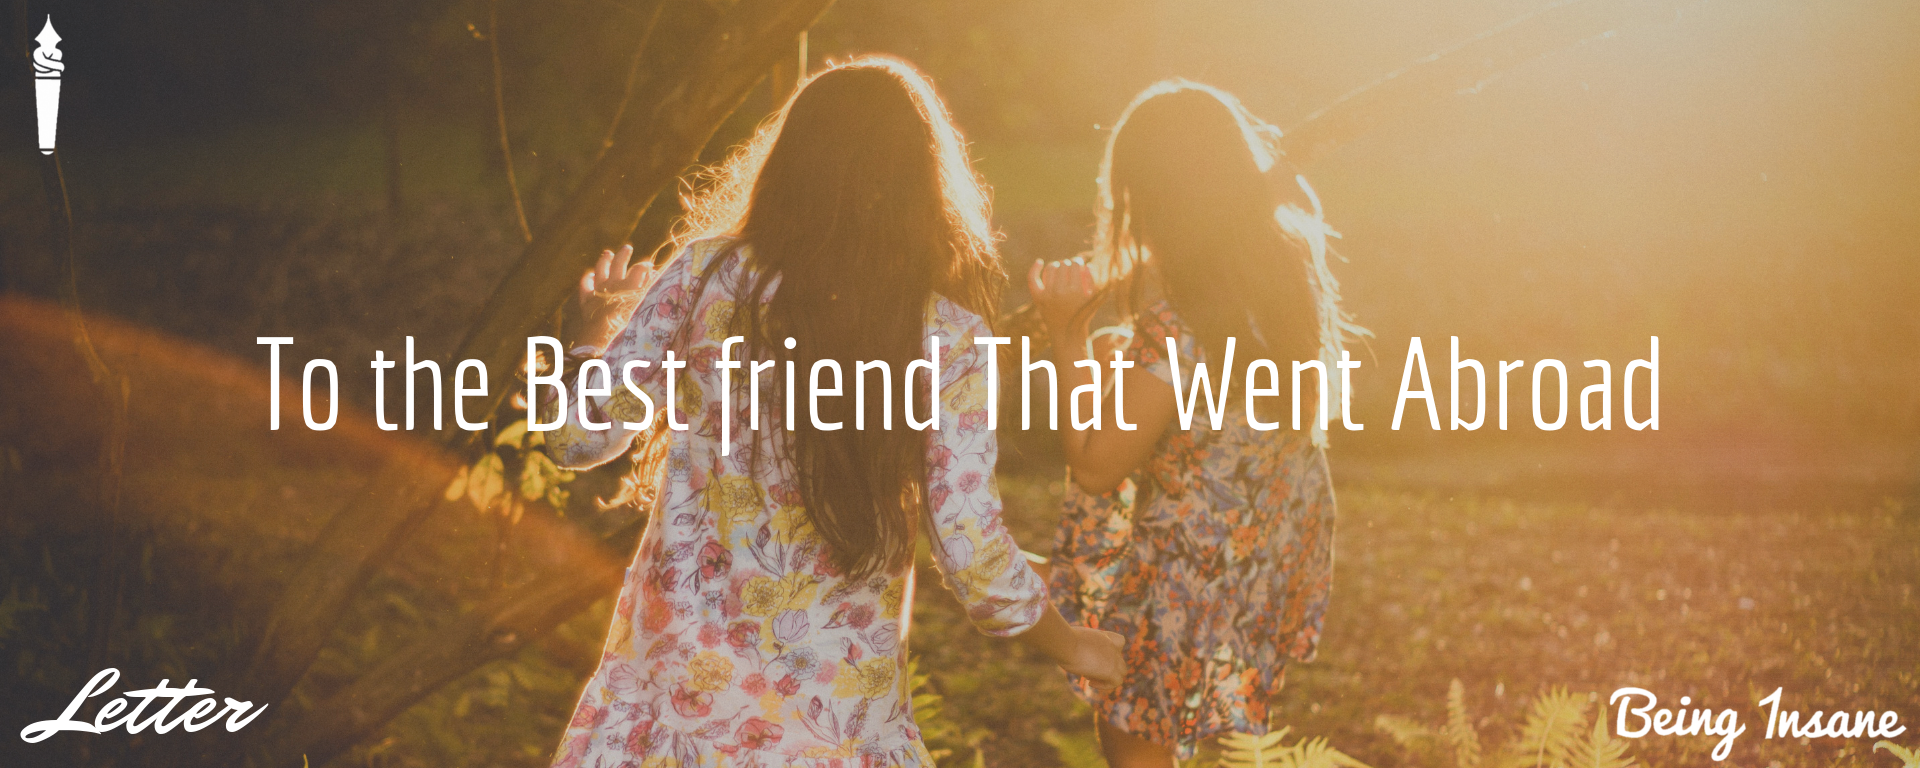 To the Bestfriend that went abroad – Nothing ever changed